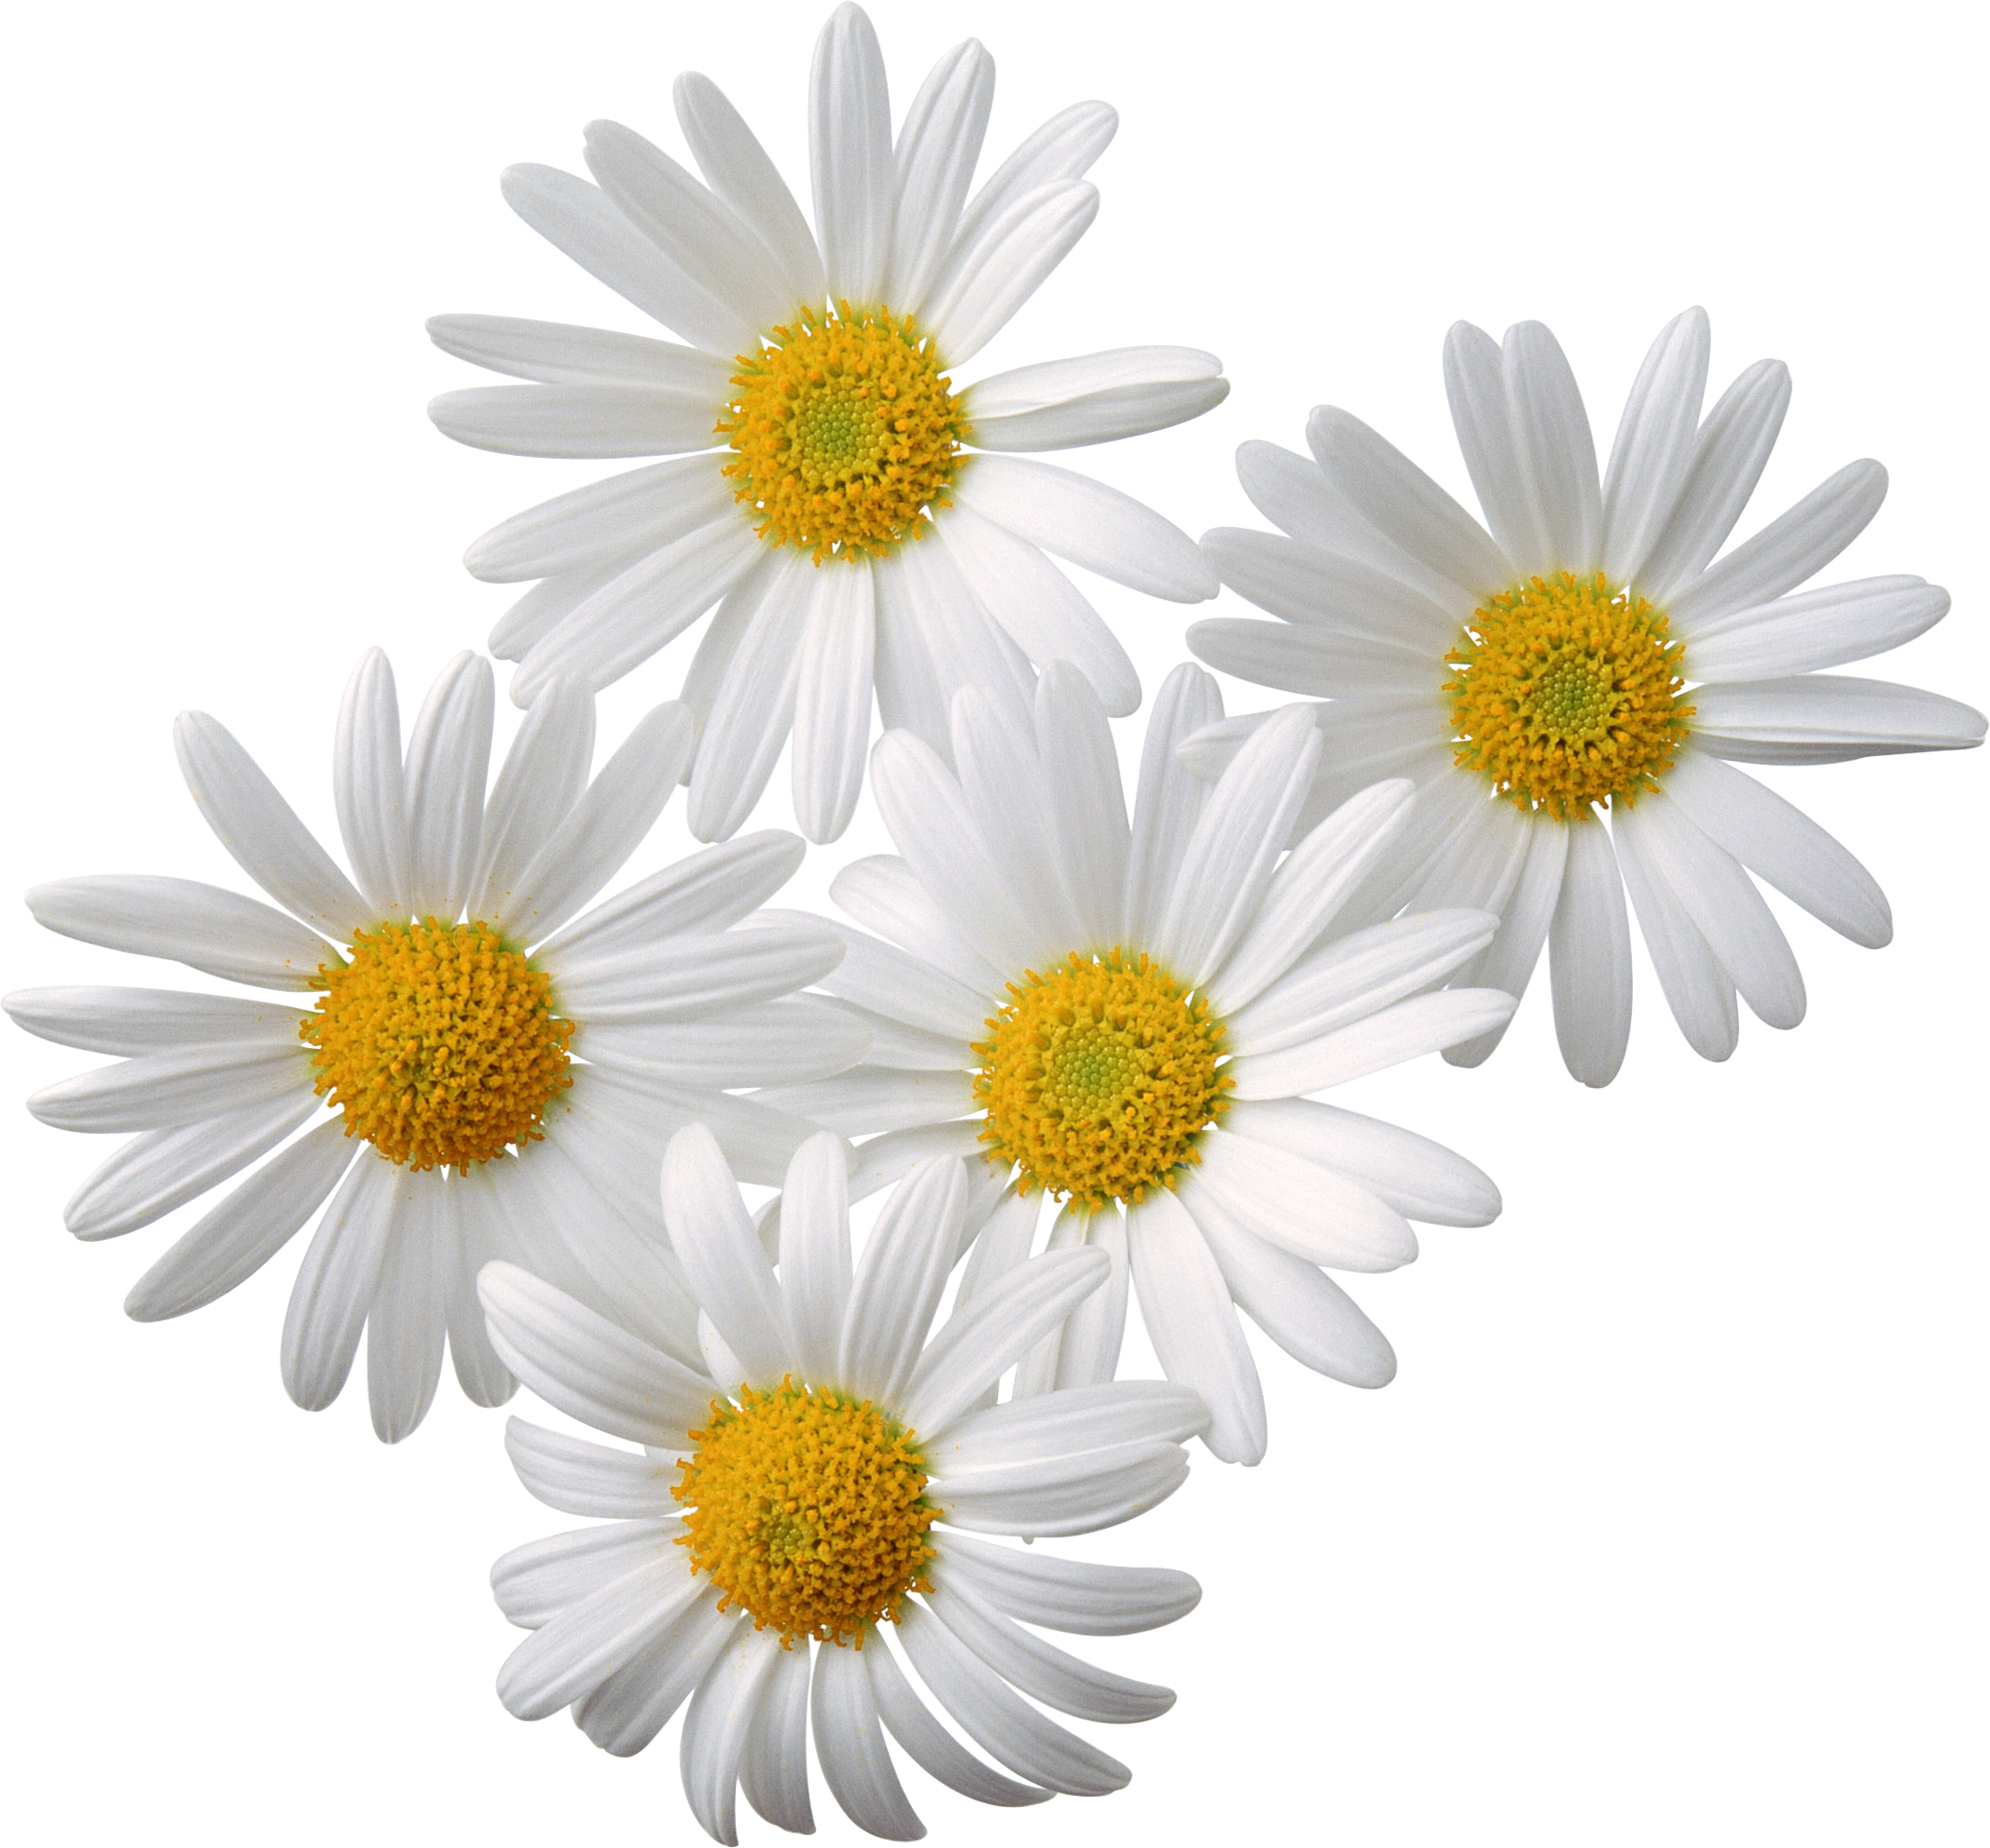 Camomiles png image free. Daisies clipart spring season